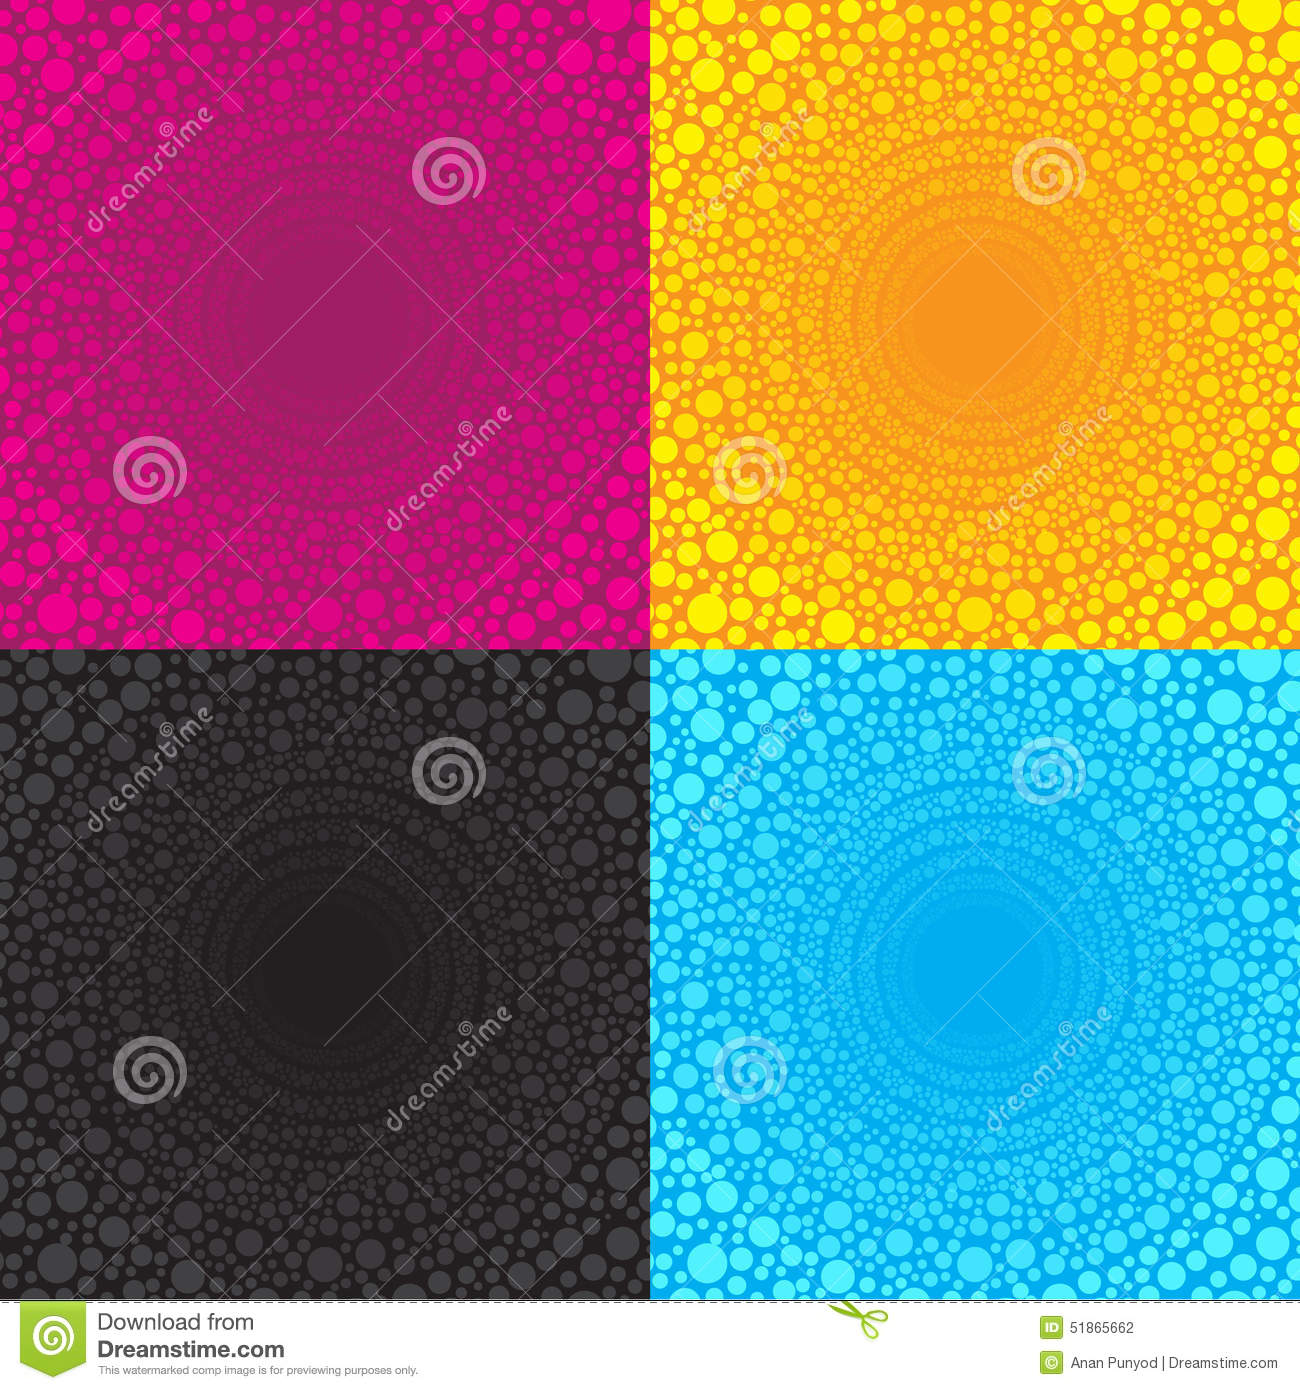 Halftone Patterns. Pink Dotted Background Cartoon Vector ...